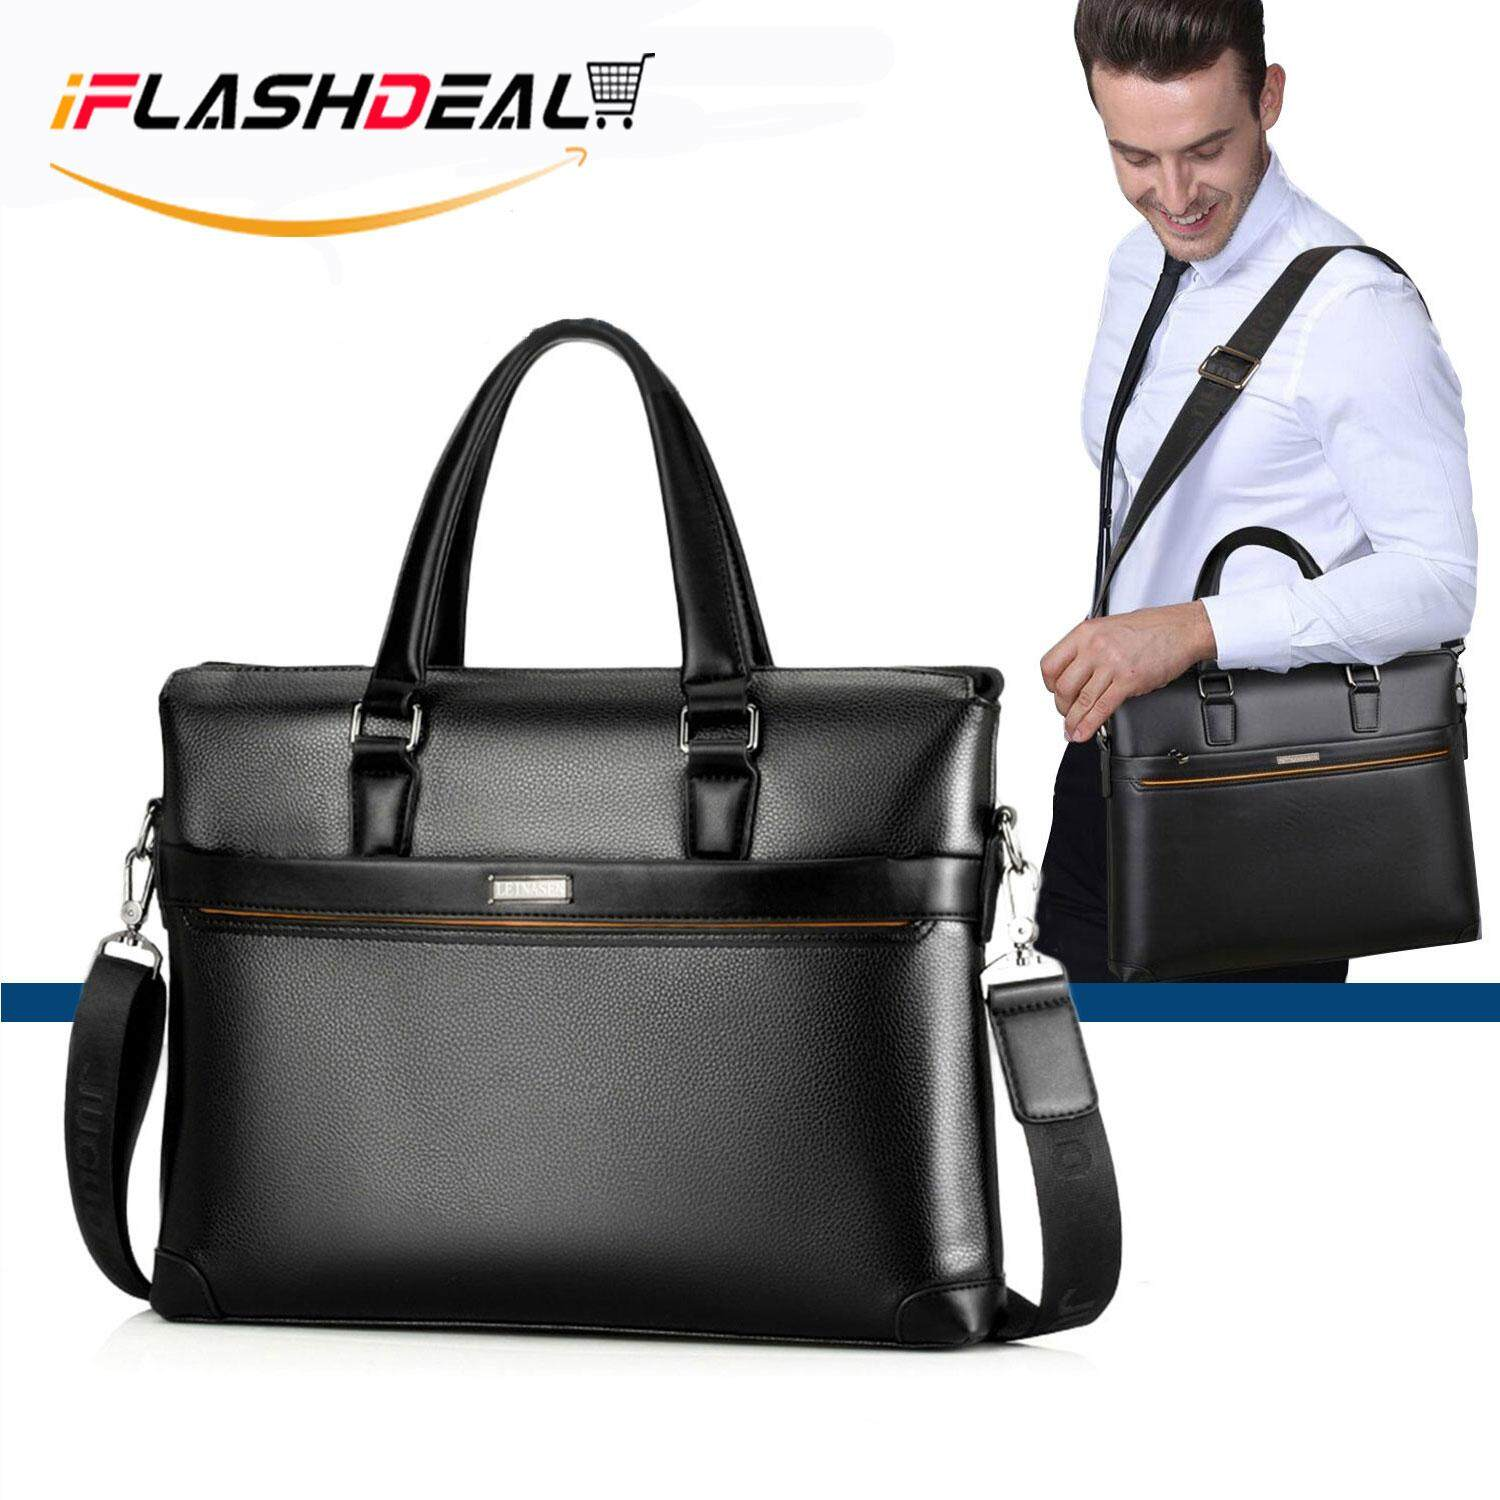 6176e3799c5d Men Business Bags - Buy Men Business Bags at Best Price in Malaysia ...